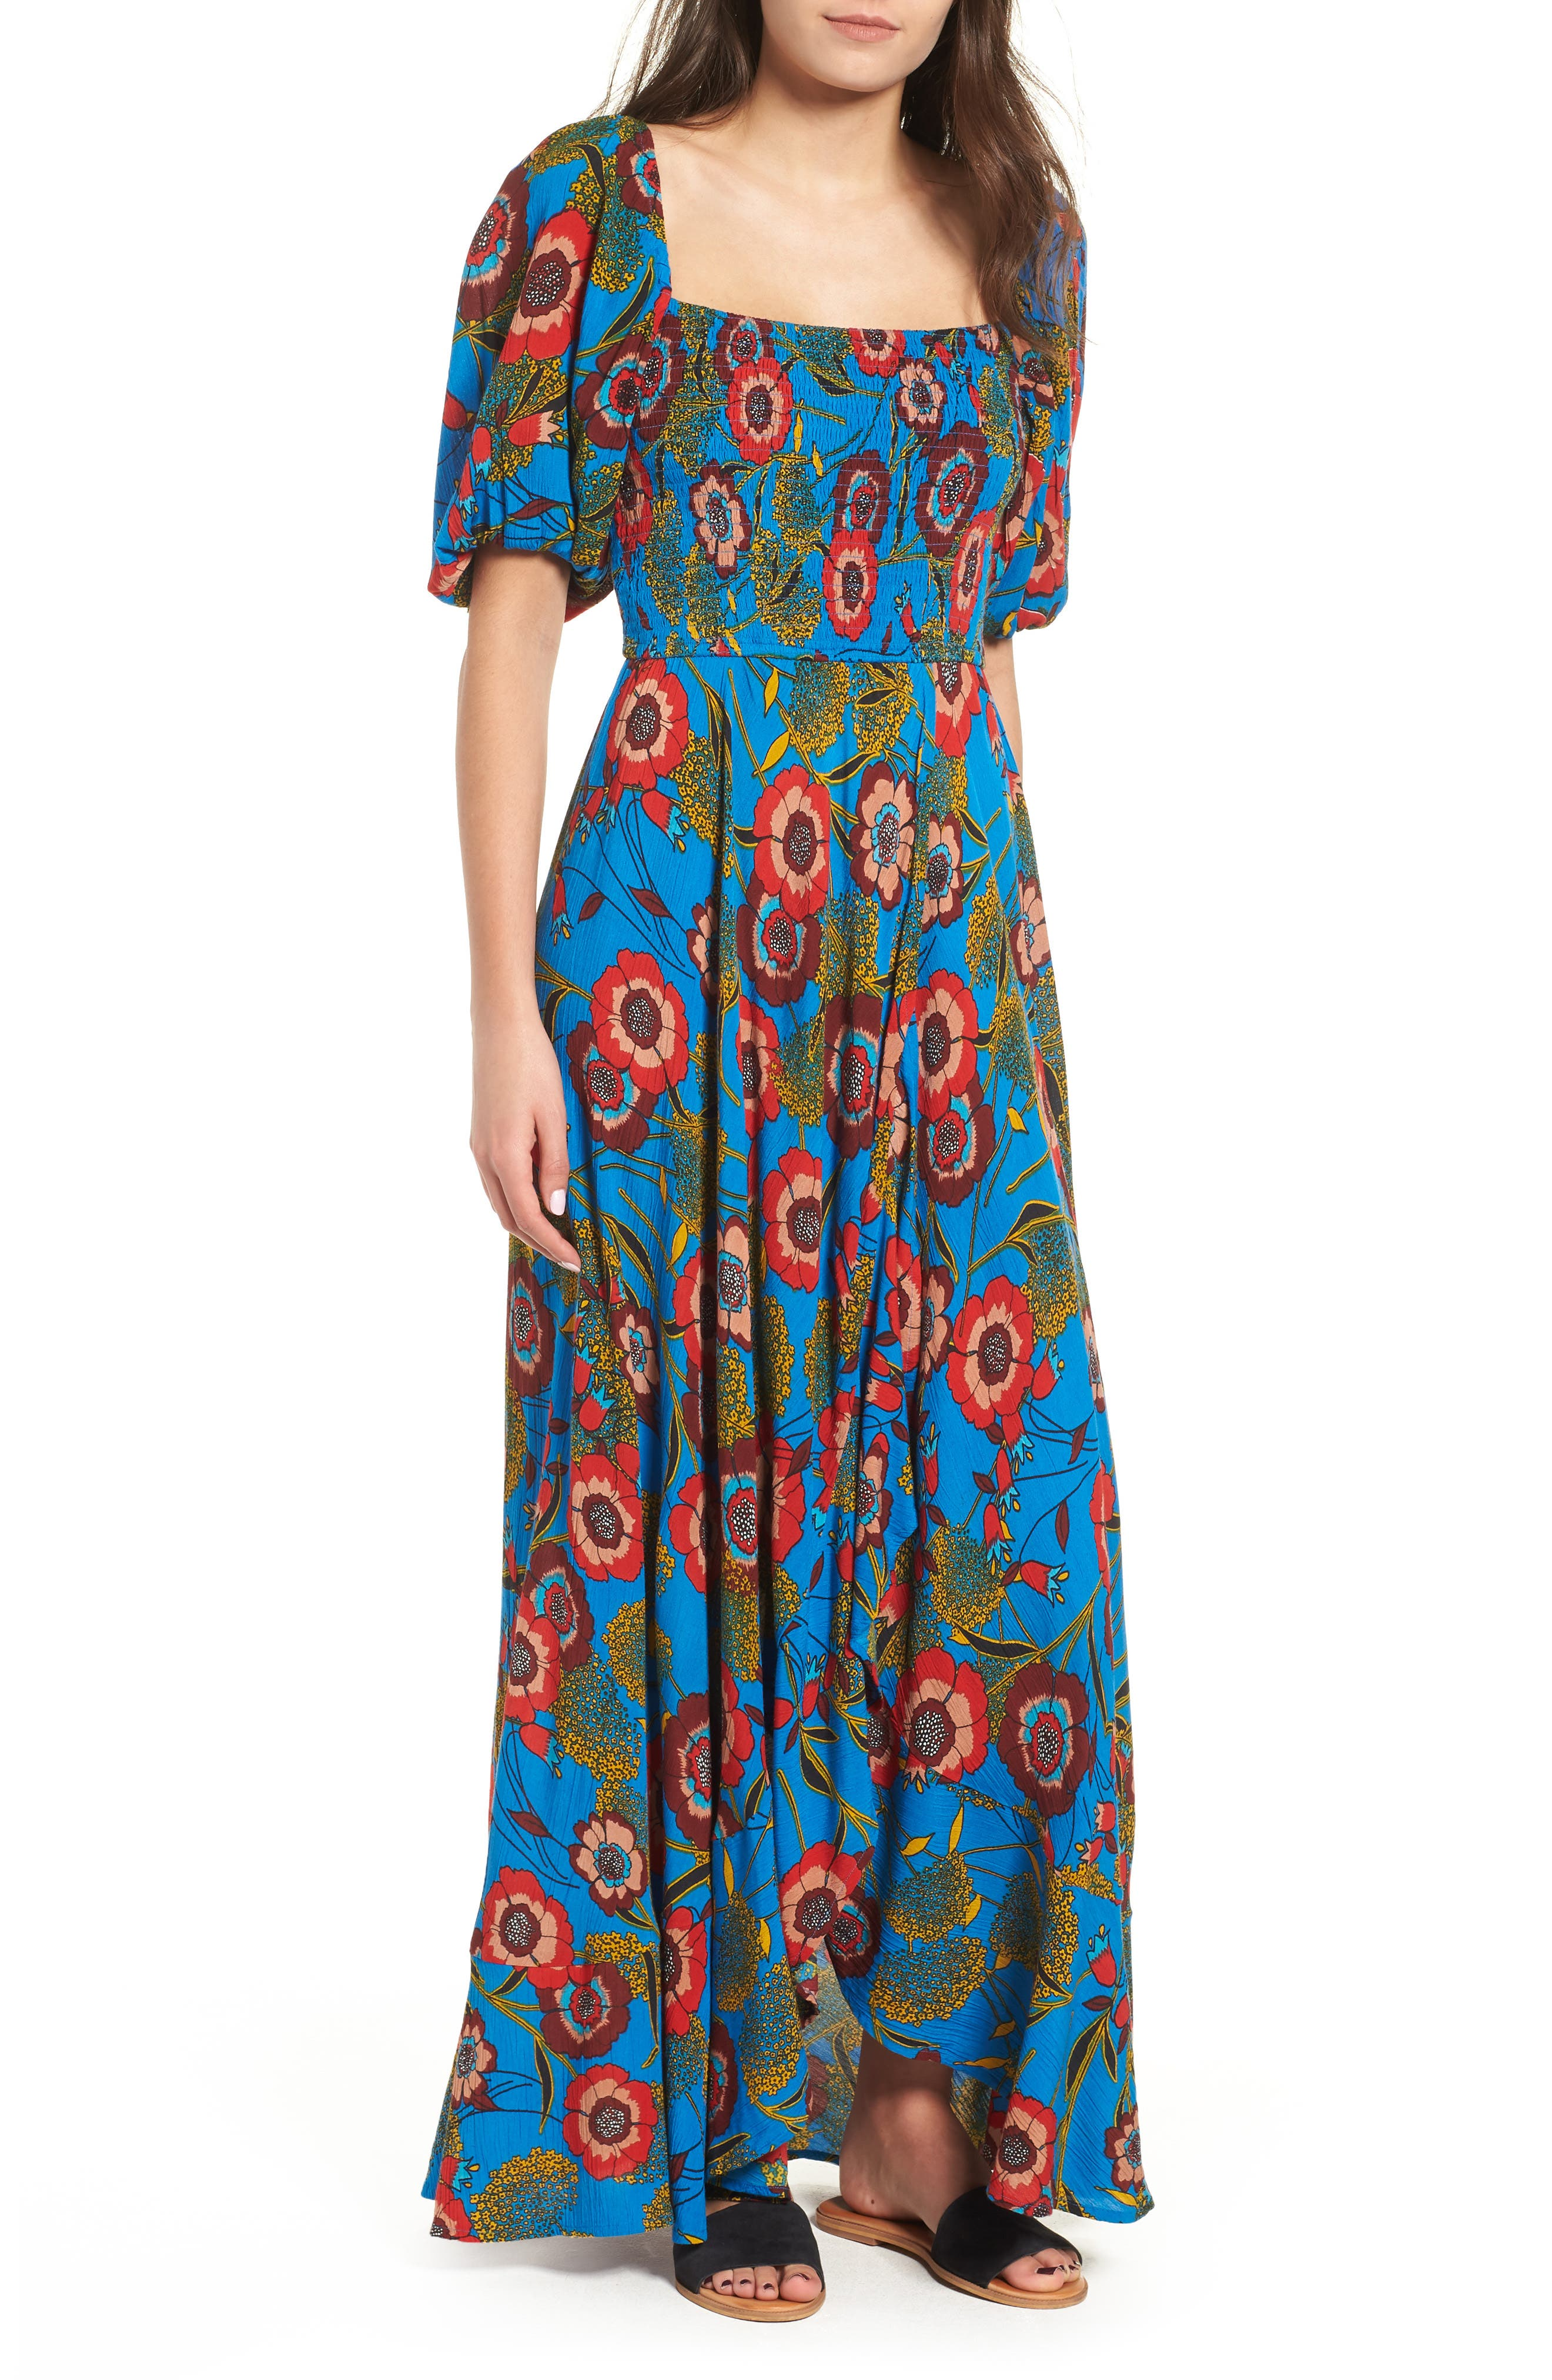 Heirloom Blossom Maxi Dress,                         Main,                         color, ROYAL/ BLUE/ RED